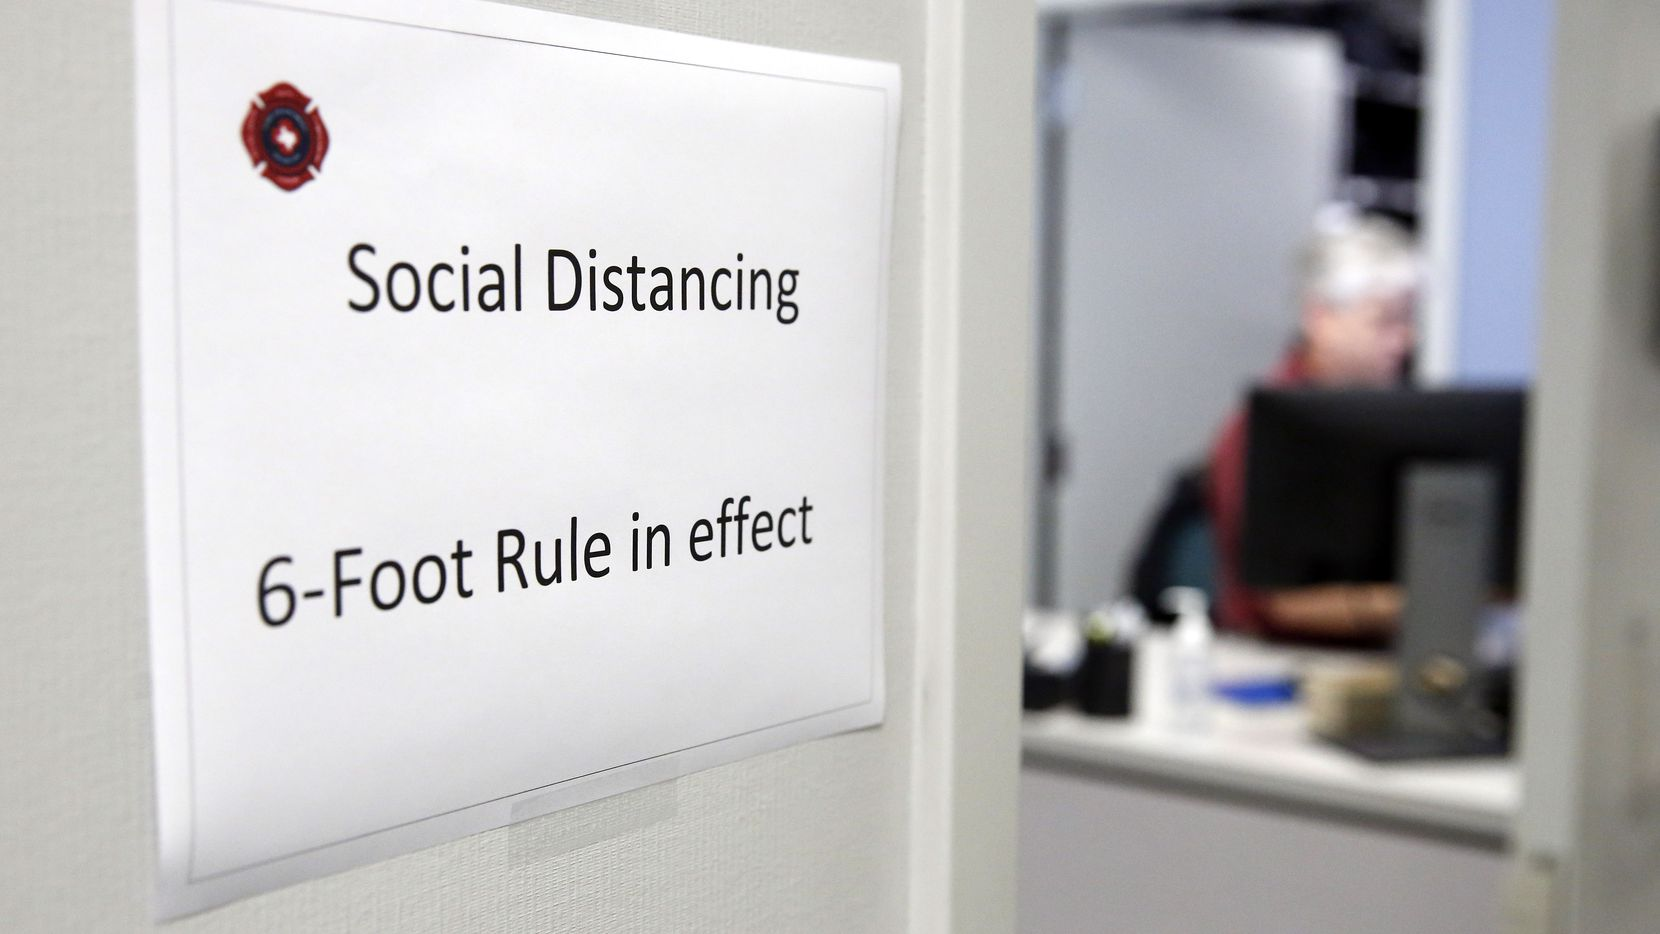 Signs outside the each office door of the Ott Cribbs Safety Center reminds workers to keep a social distancing of 6-feet, Wednesday March 18, 2020. Safe social distancing practices are even more important for individuals more susceptible to infection due to being immunocompromised.